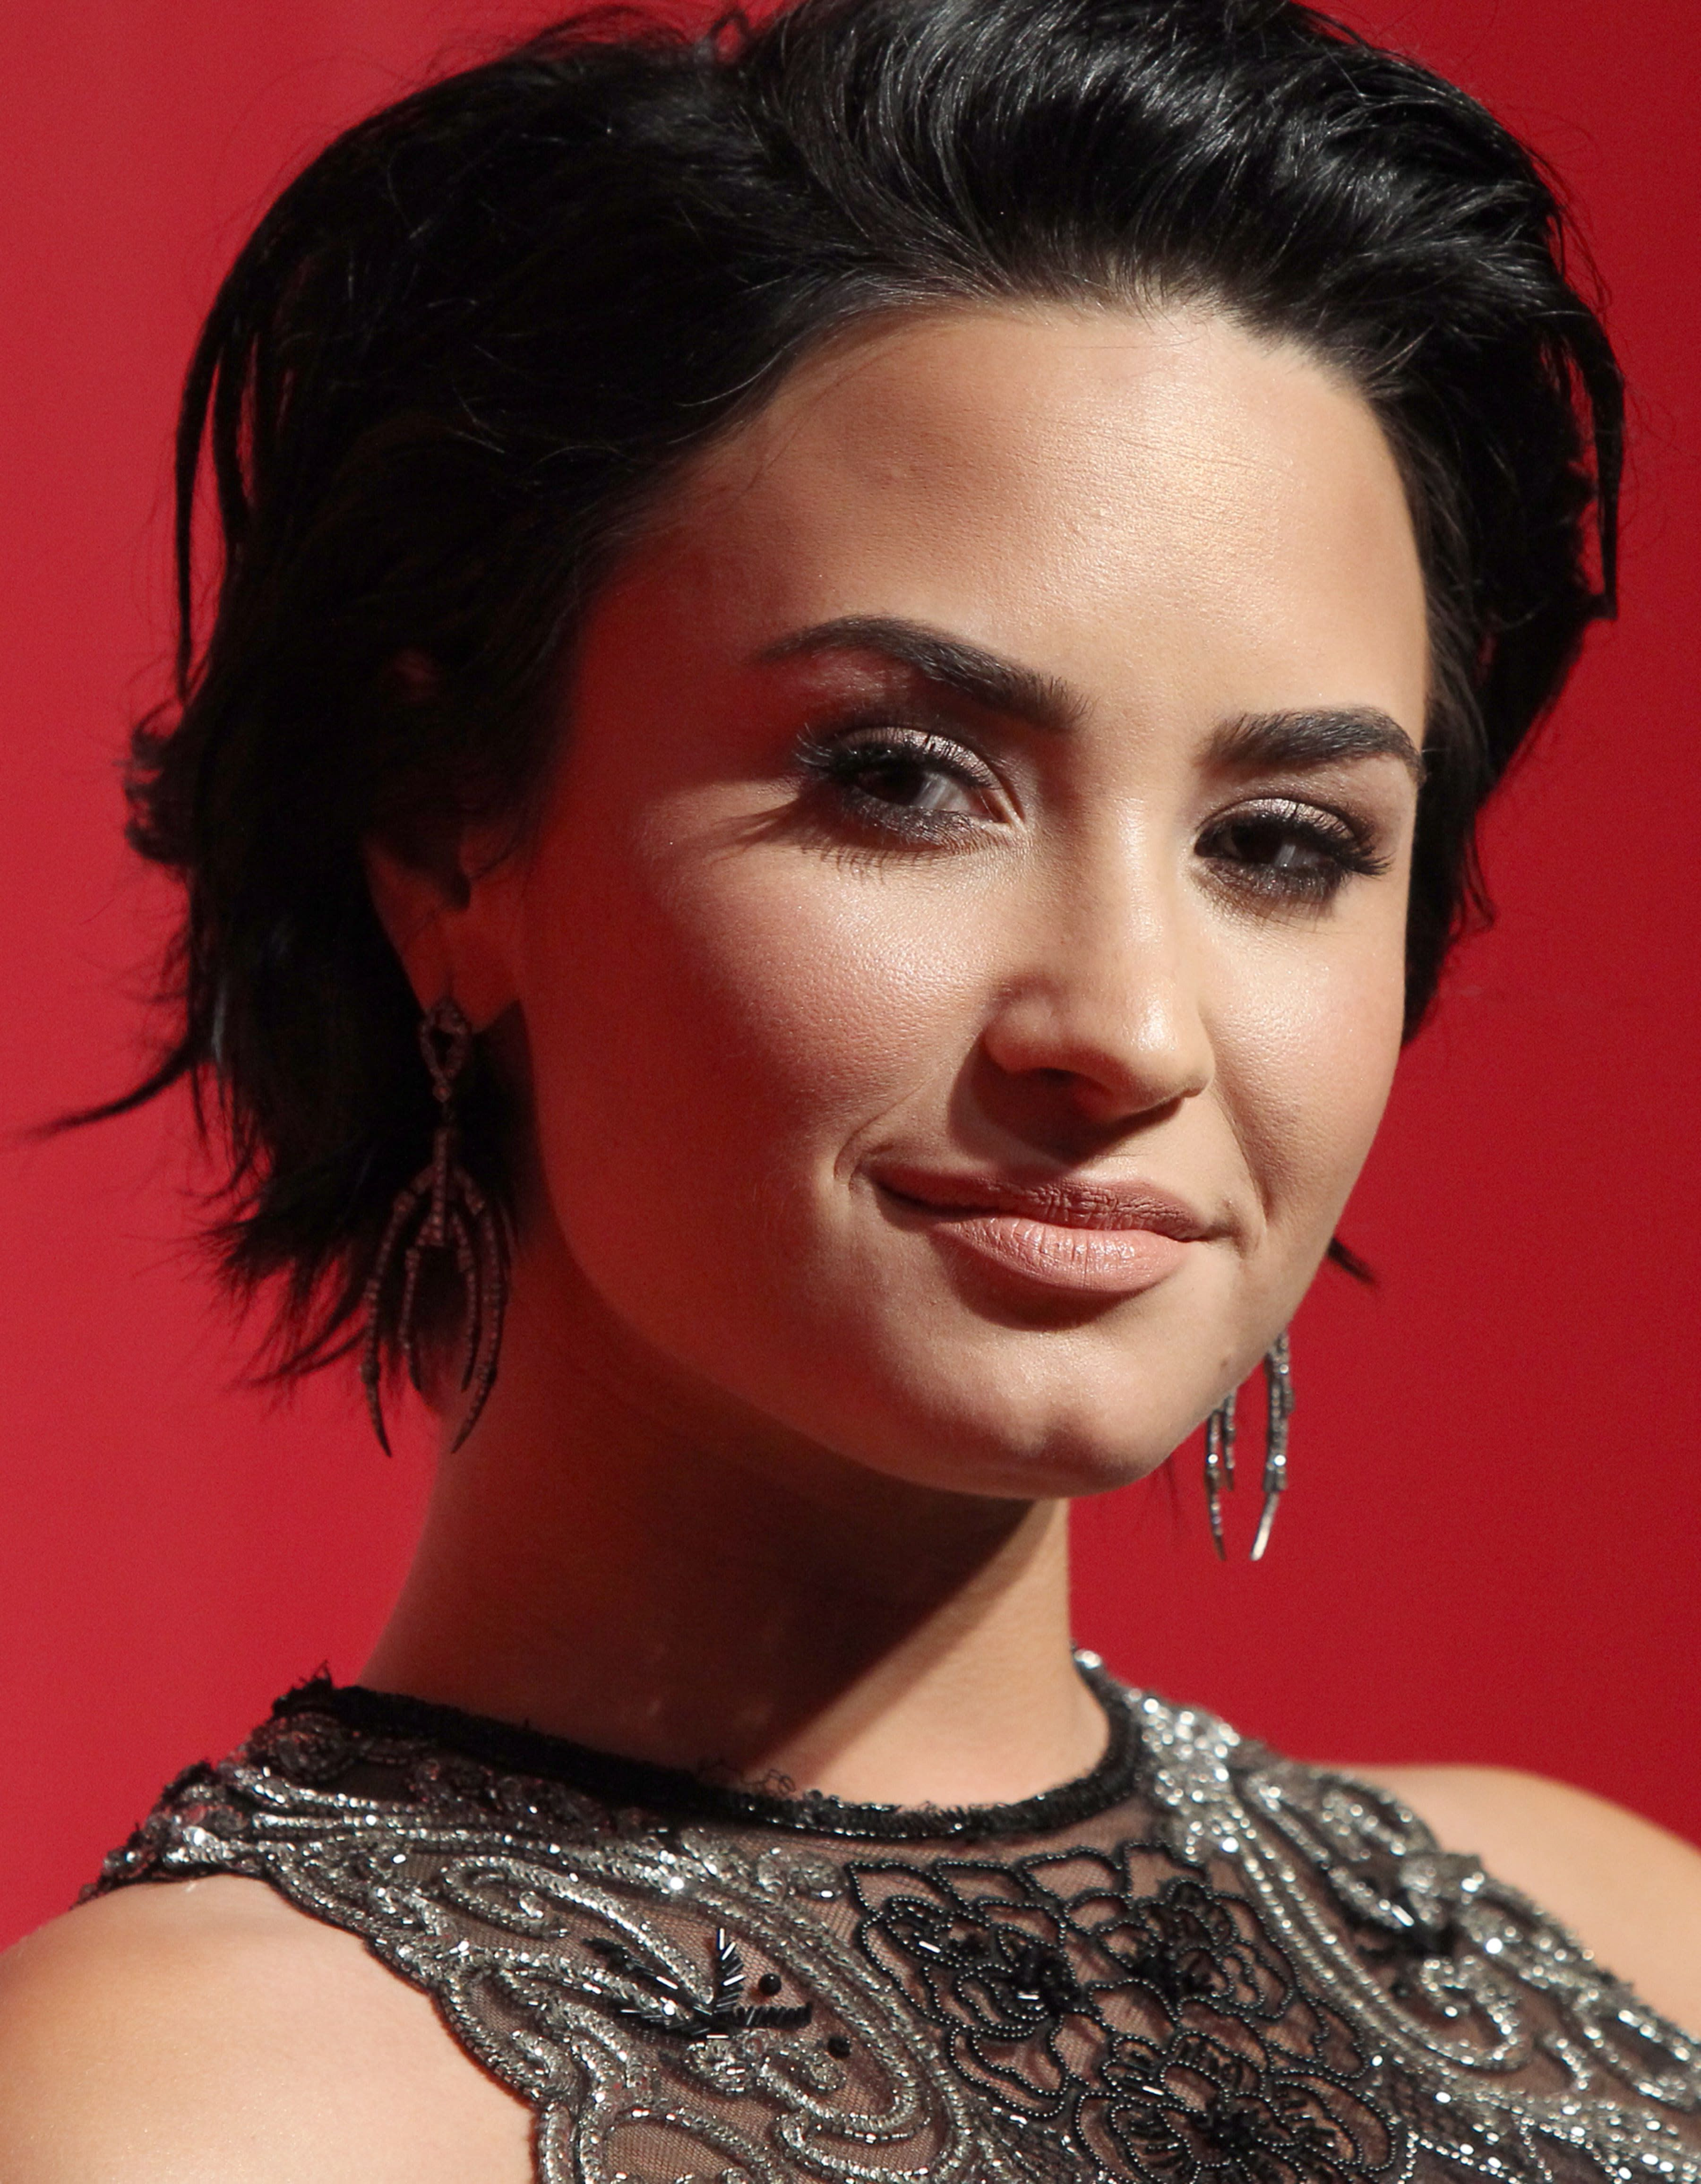 64 Short Hairstyles That Will Make You Want To Chop It All Off For Demi Lovato Short Hairstyles (View 24 of 25)